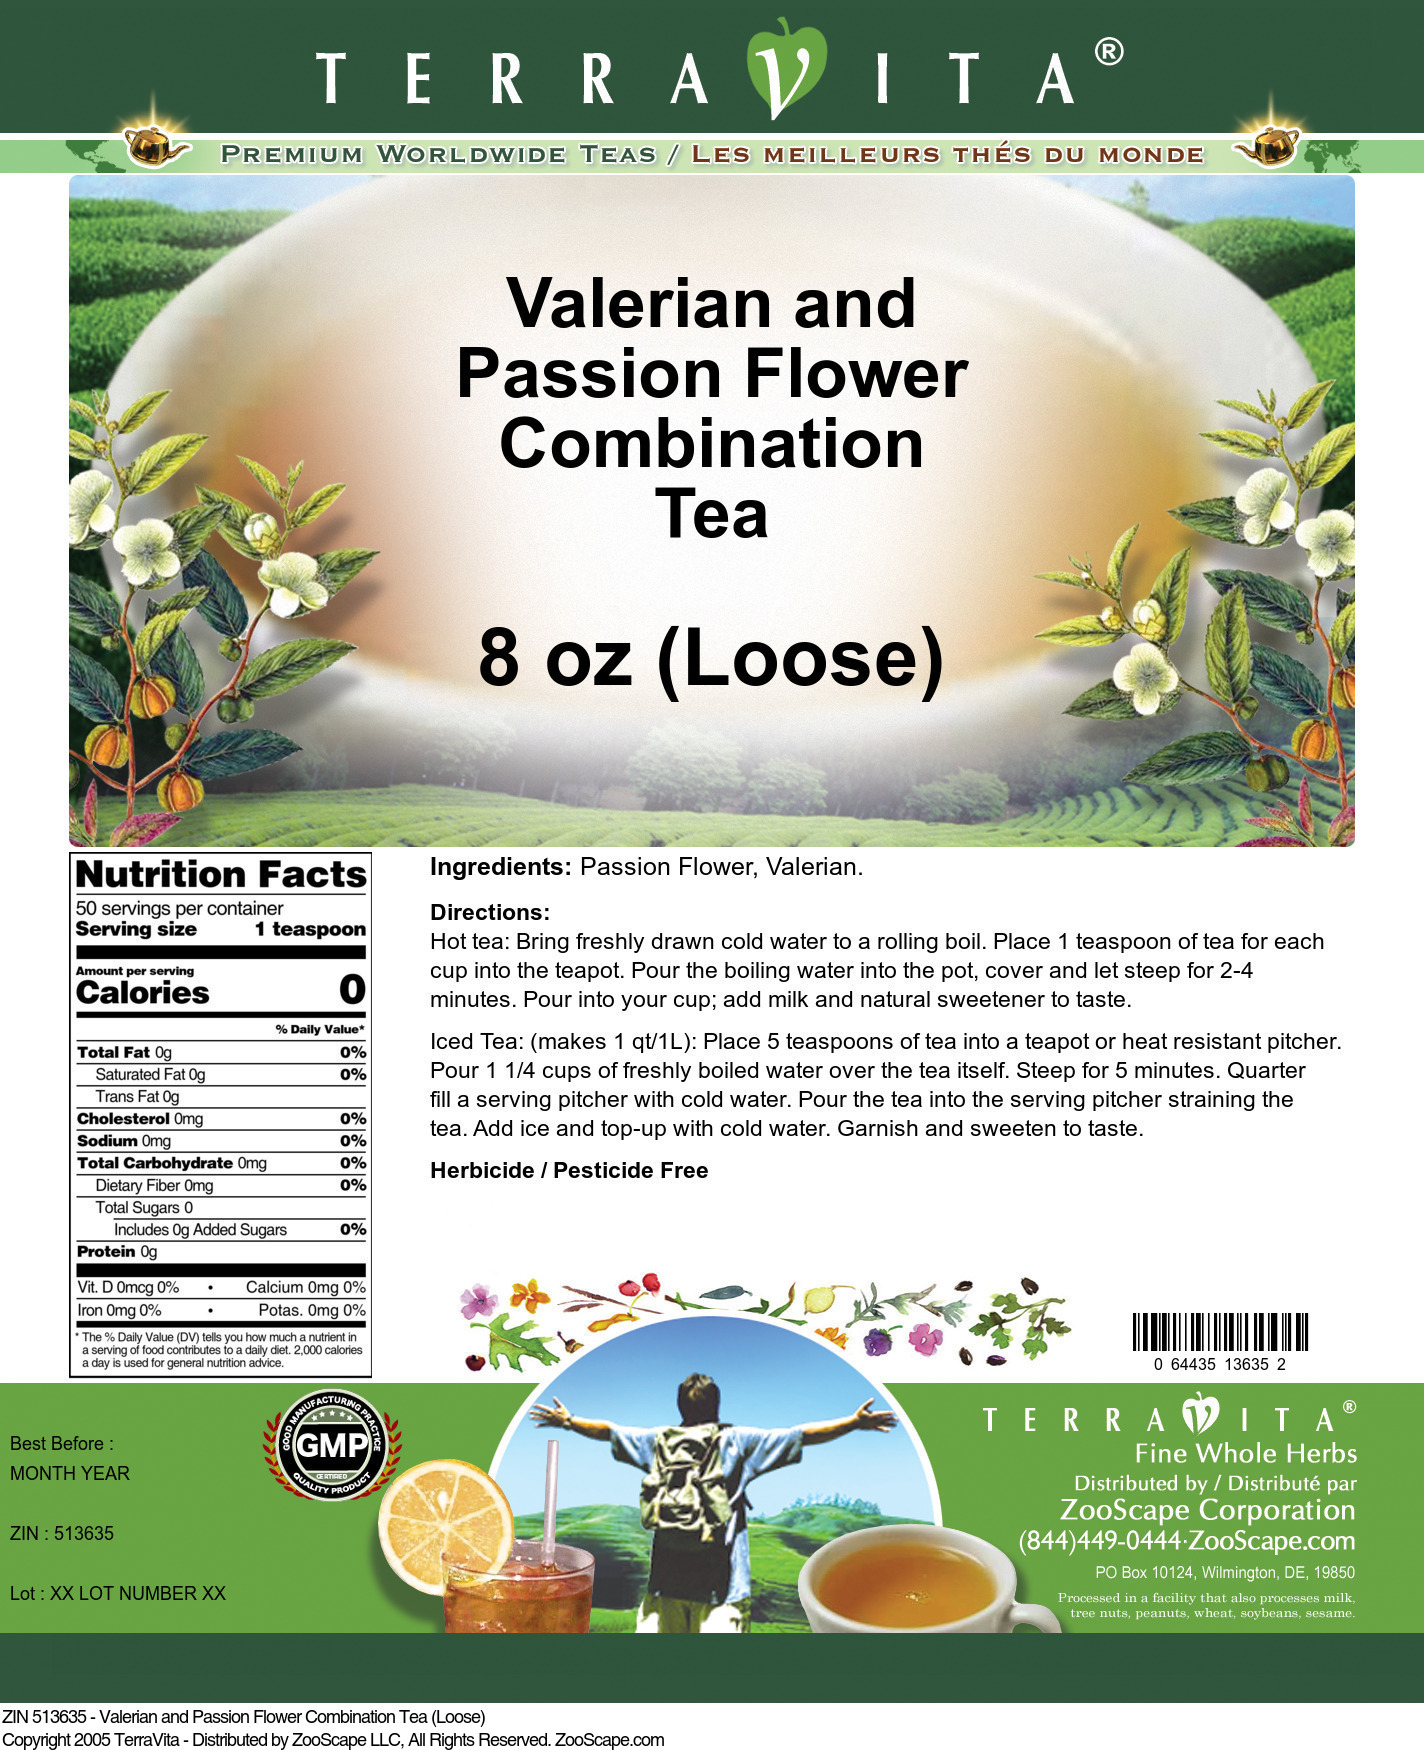 Valerian and Passion Flower Combination Tea (Loose)